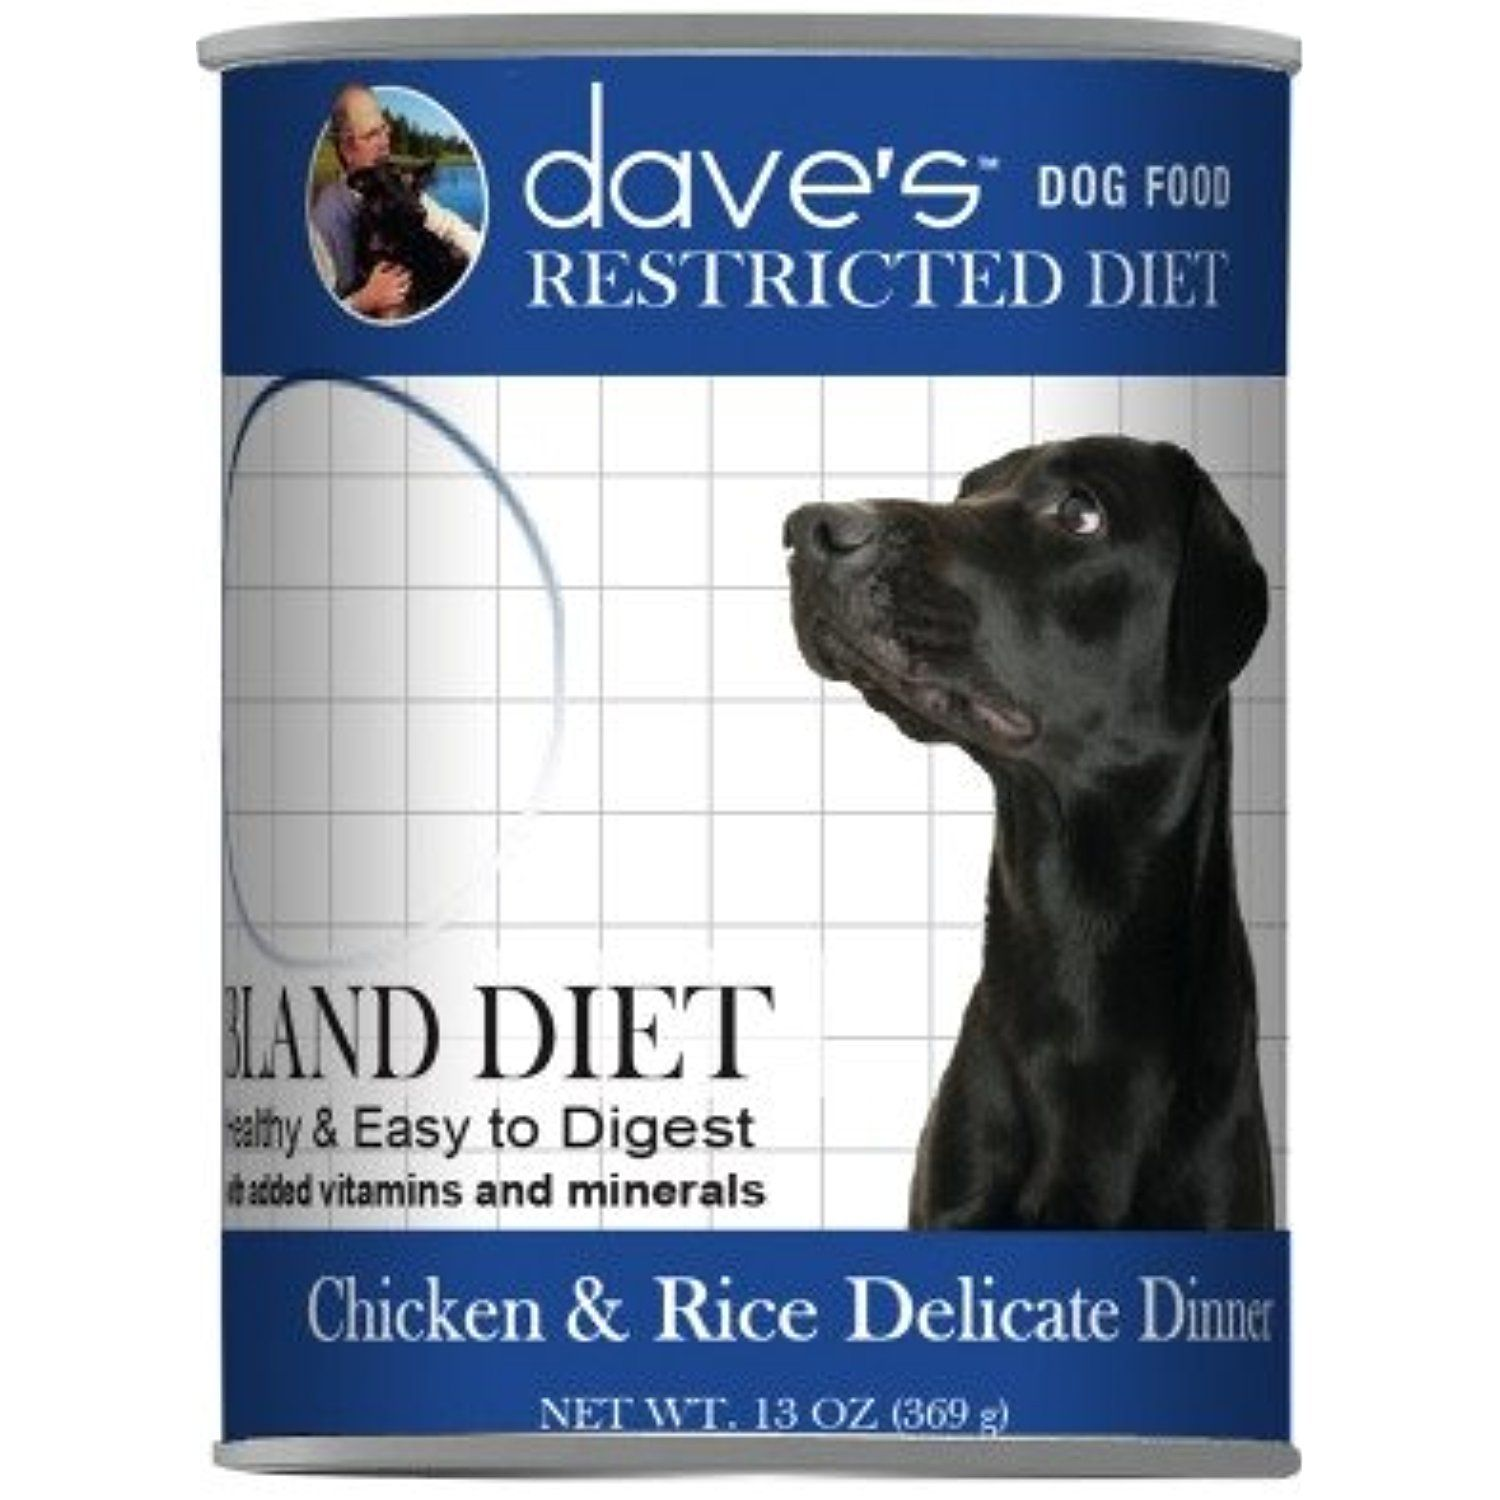 Dave's Restricted Bland Diet, Chicken & Rice For Dogs, 13